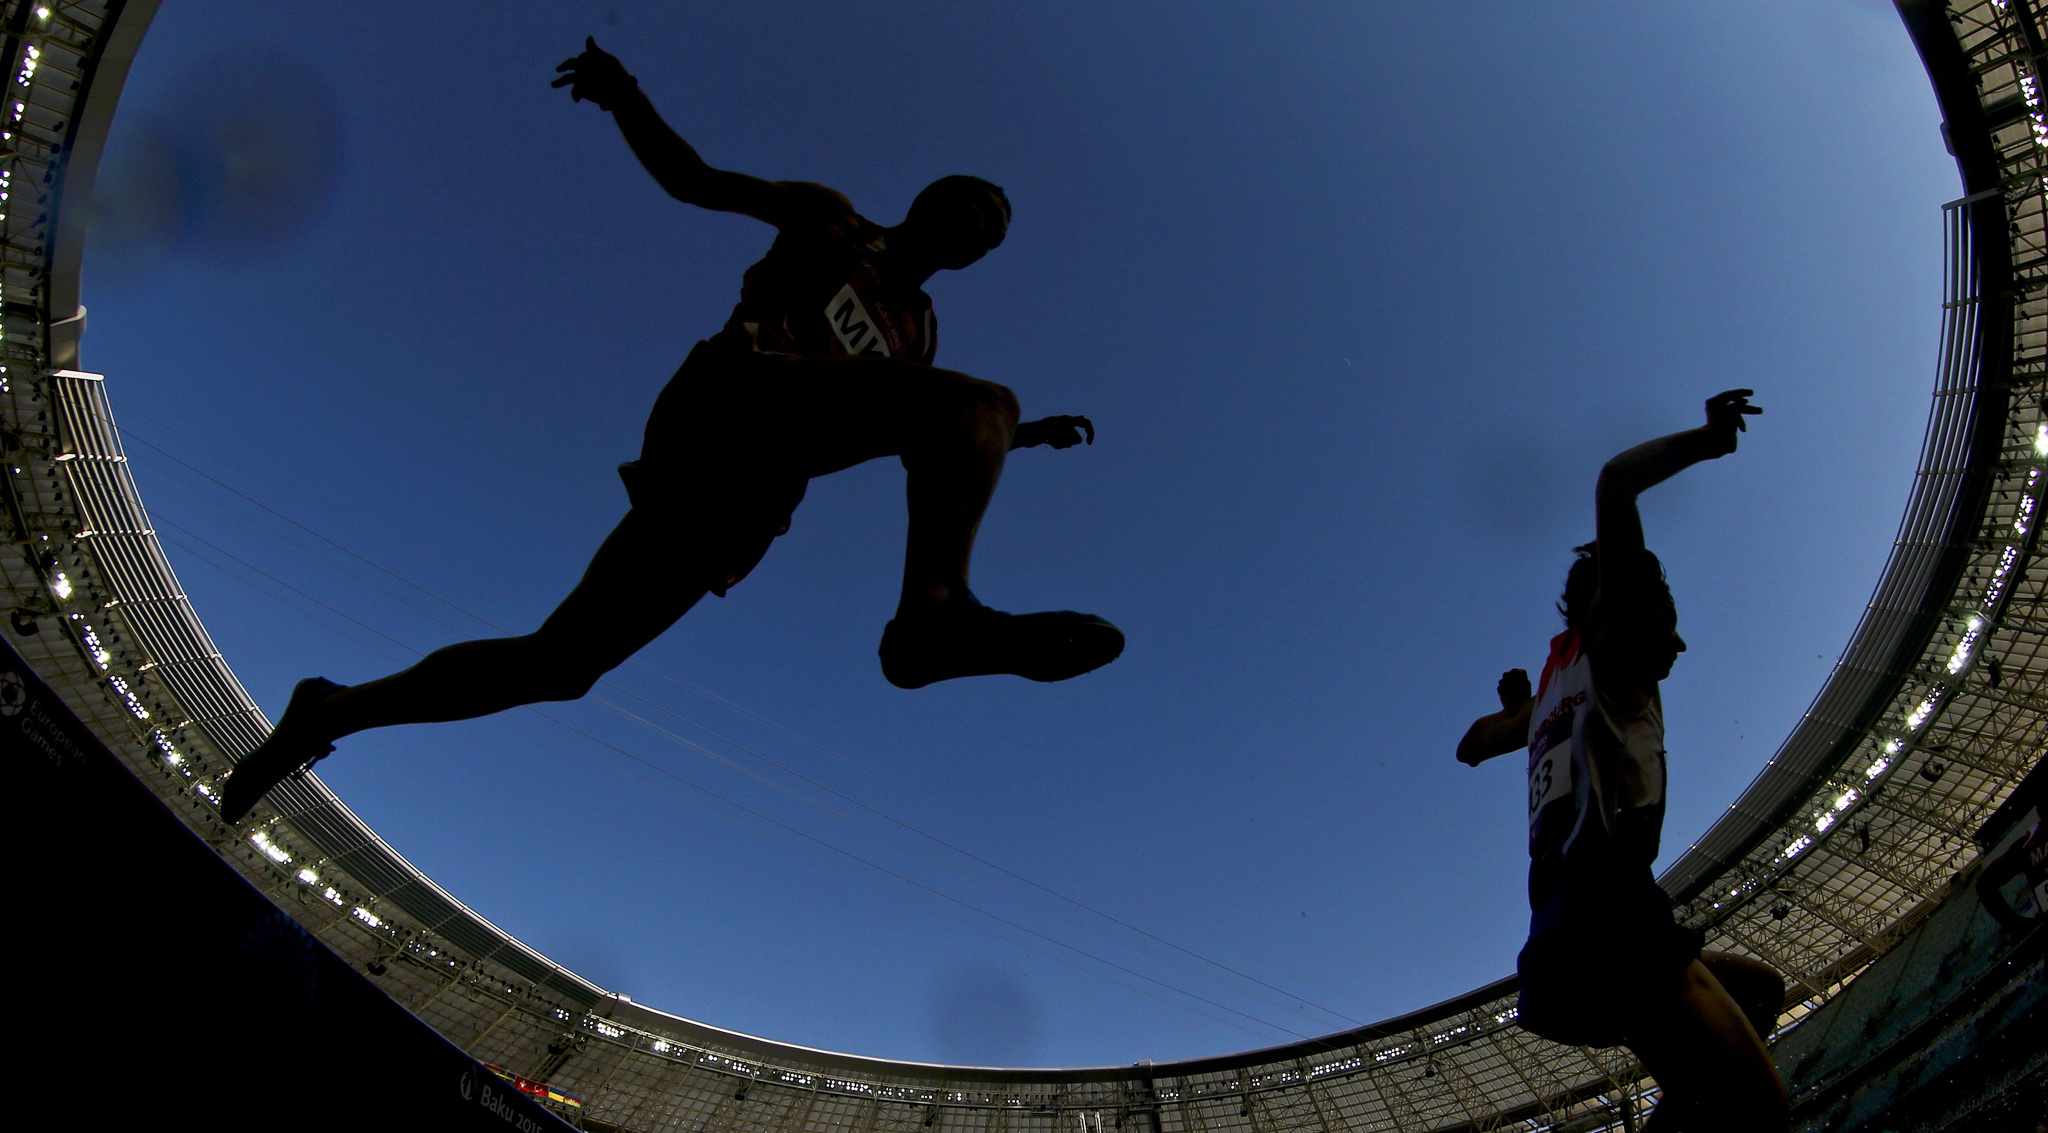 Athletes compete in the men's 3000 meters steeplechase race during the atheltics events at the 1st European Games in Baku...Athletes compete in the men's 3000 meters steeplechase race during the atheltics events at the 1st European Games in Baku, Azerbaijan, June 22 , 2015.  REUTERS/Stoyan Nenov